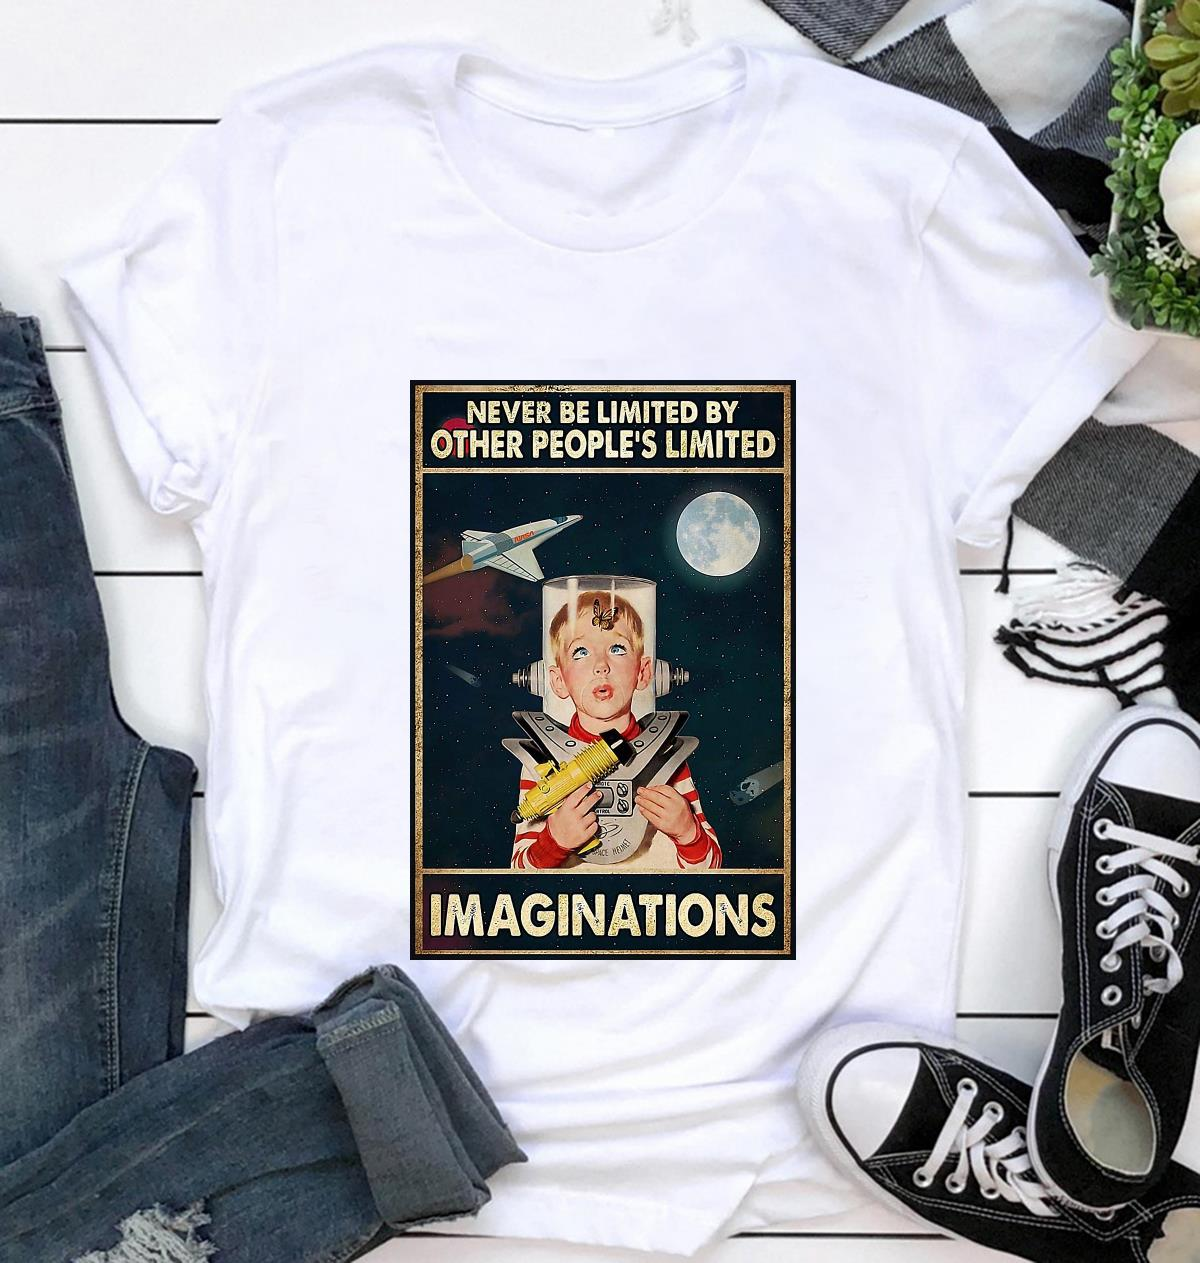 Never be limited by other people's limited imaginations poster t-shirt